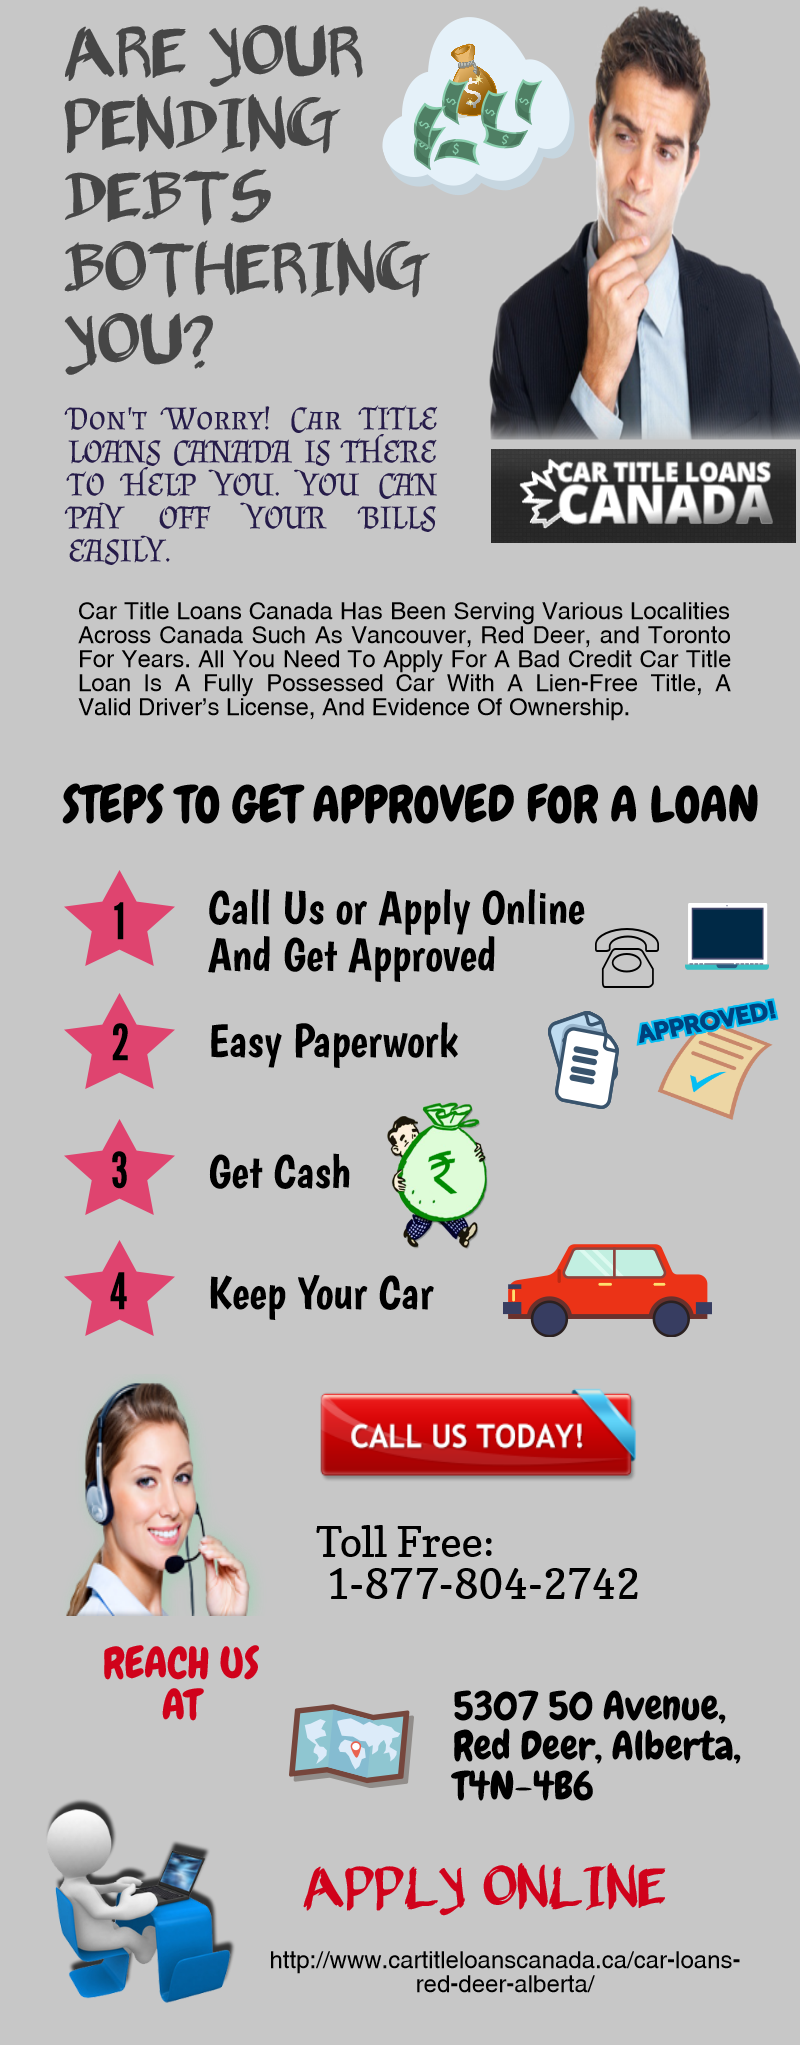 If You Want To Get Quick And Easy Loan In Red Deer Apply For A Car Title Loan All You Need To Have Is A V Bad Credit Car Loan Bad